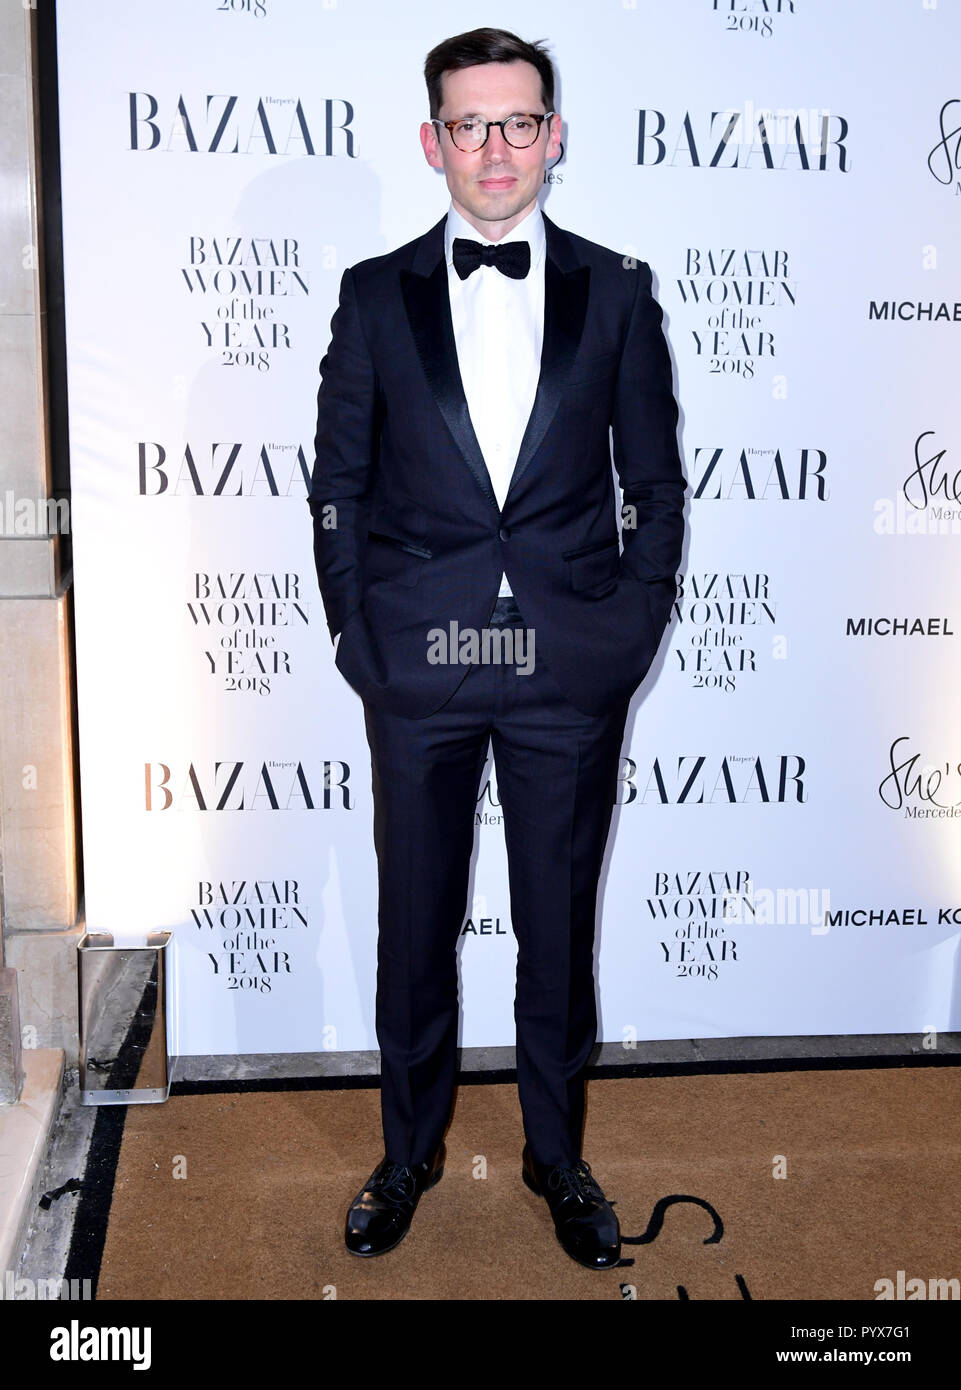 Erdem Moralioglu attending the Harper's Bazaar Women of the Year Awards 2018 held at Claridges, London. - Stock Image